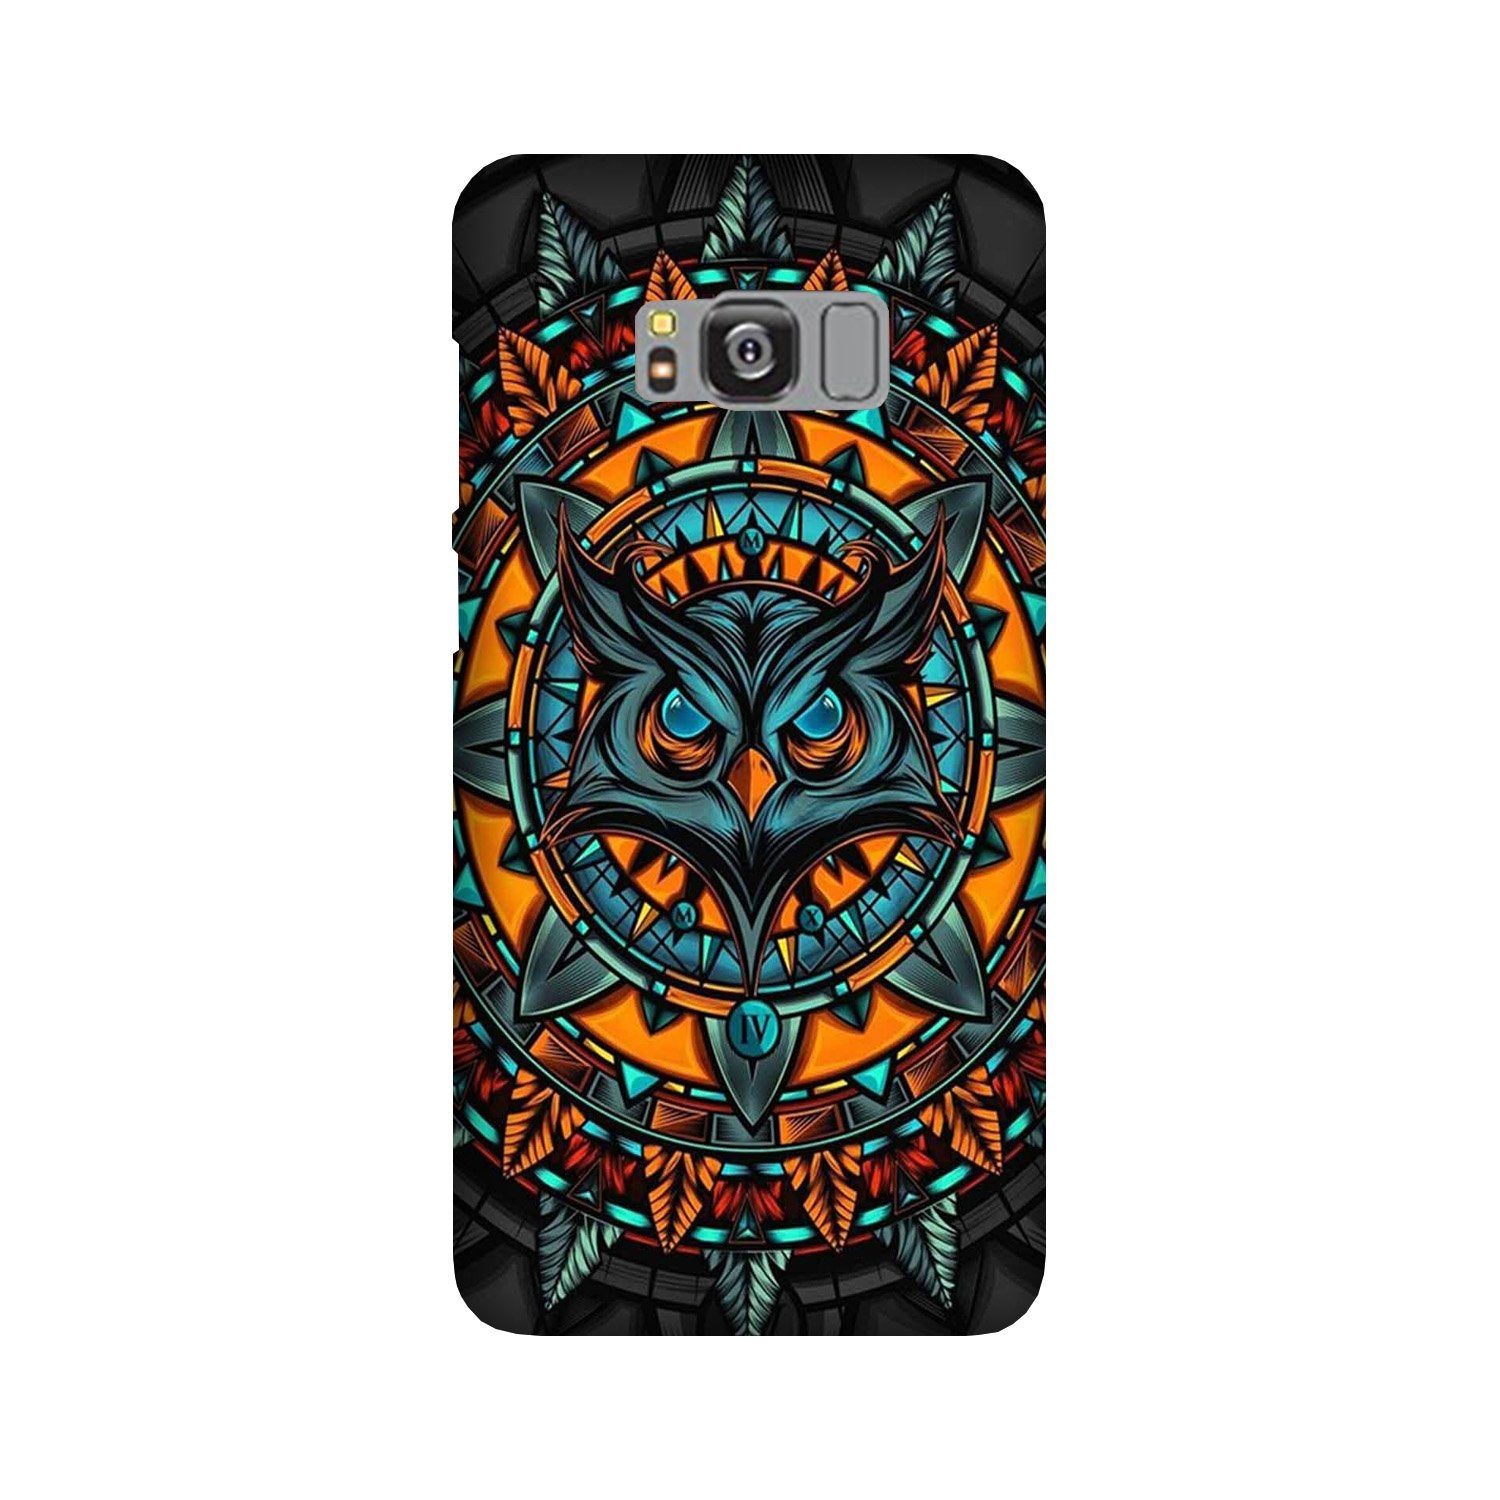 Owl Mobile Back Case for Galaxy S8 Plus  (Design - 360)